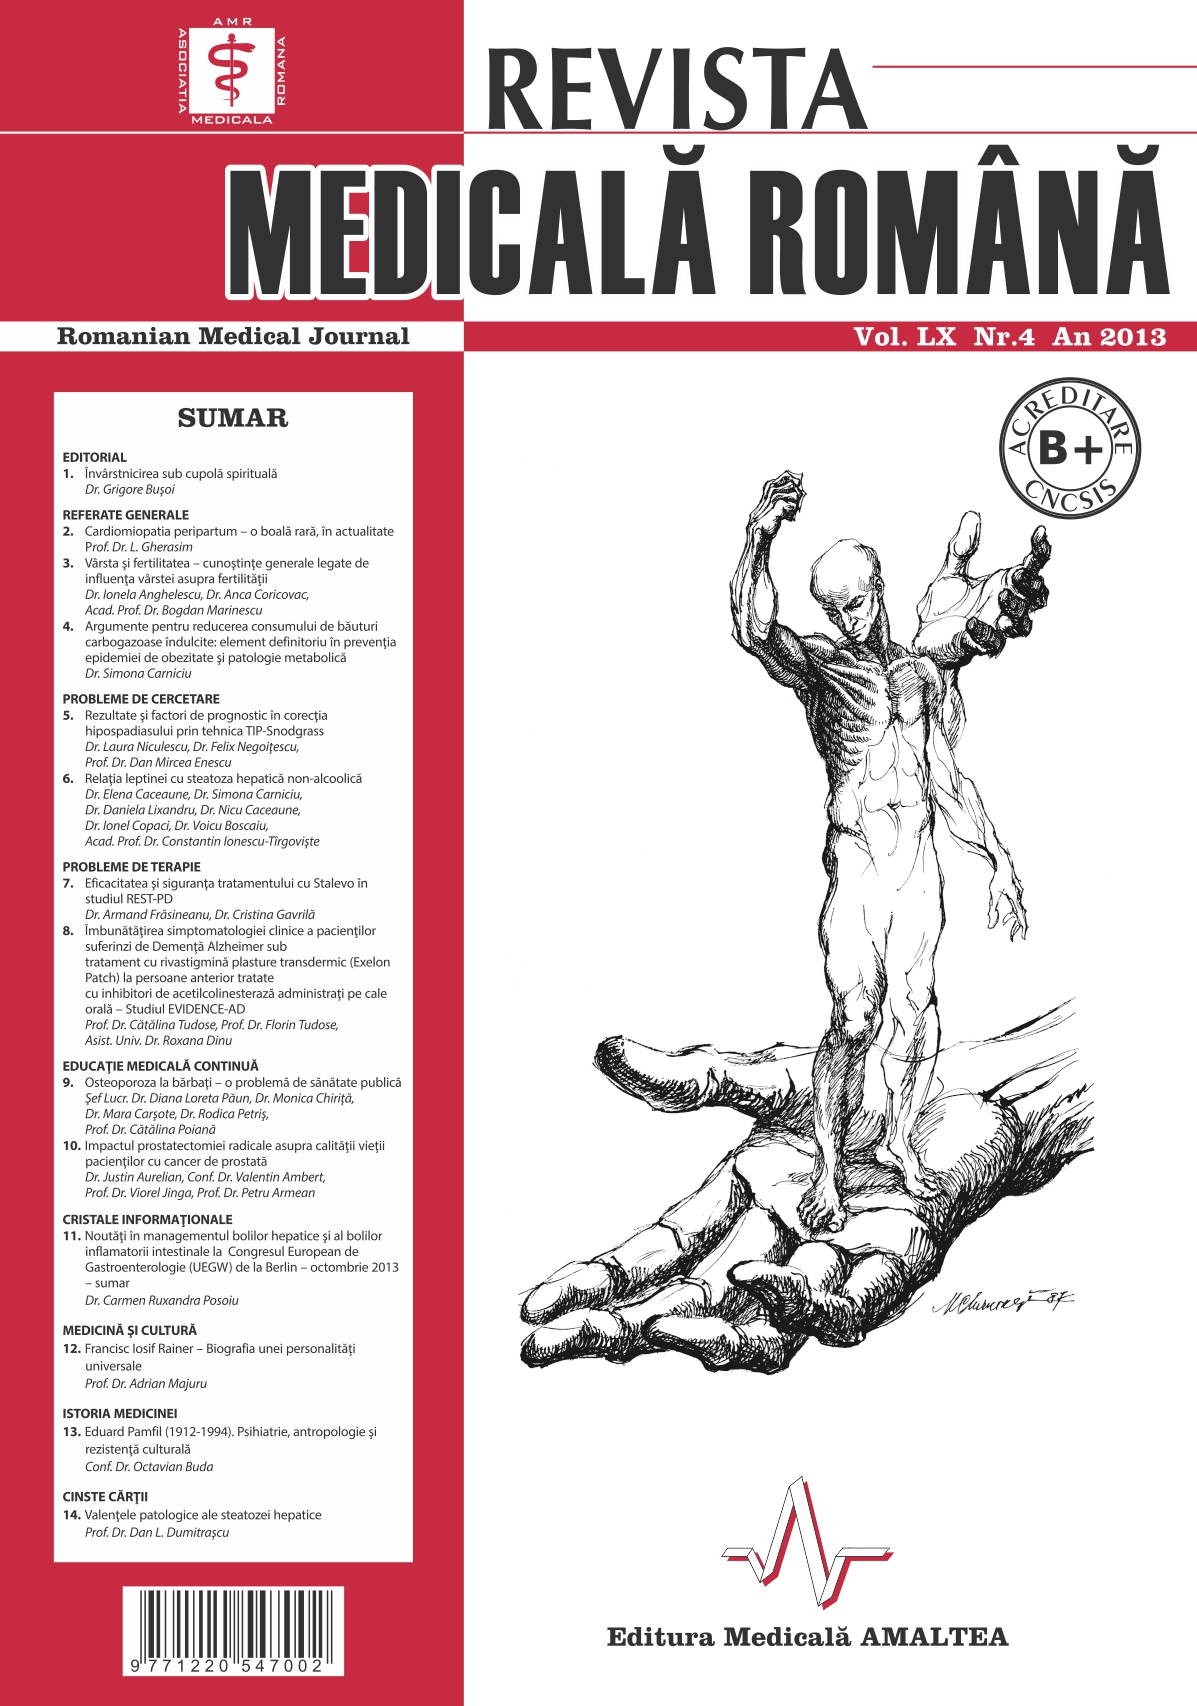 REVISTA MEDICALA ROMANA - Romanian Medical Journal, Vol. LX, No. 4, Year 2013